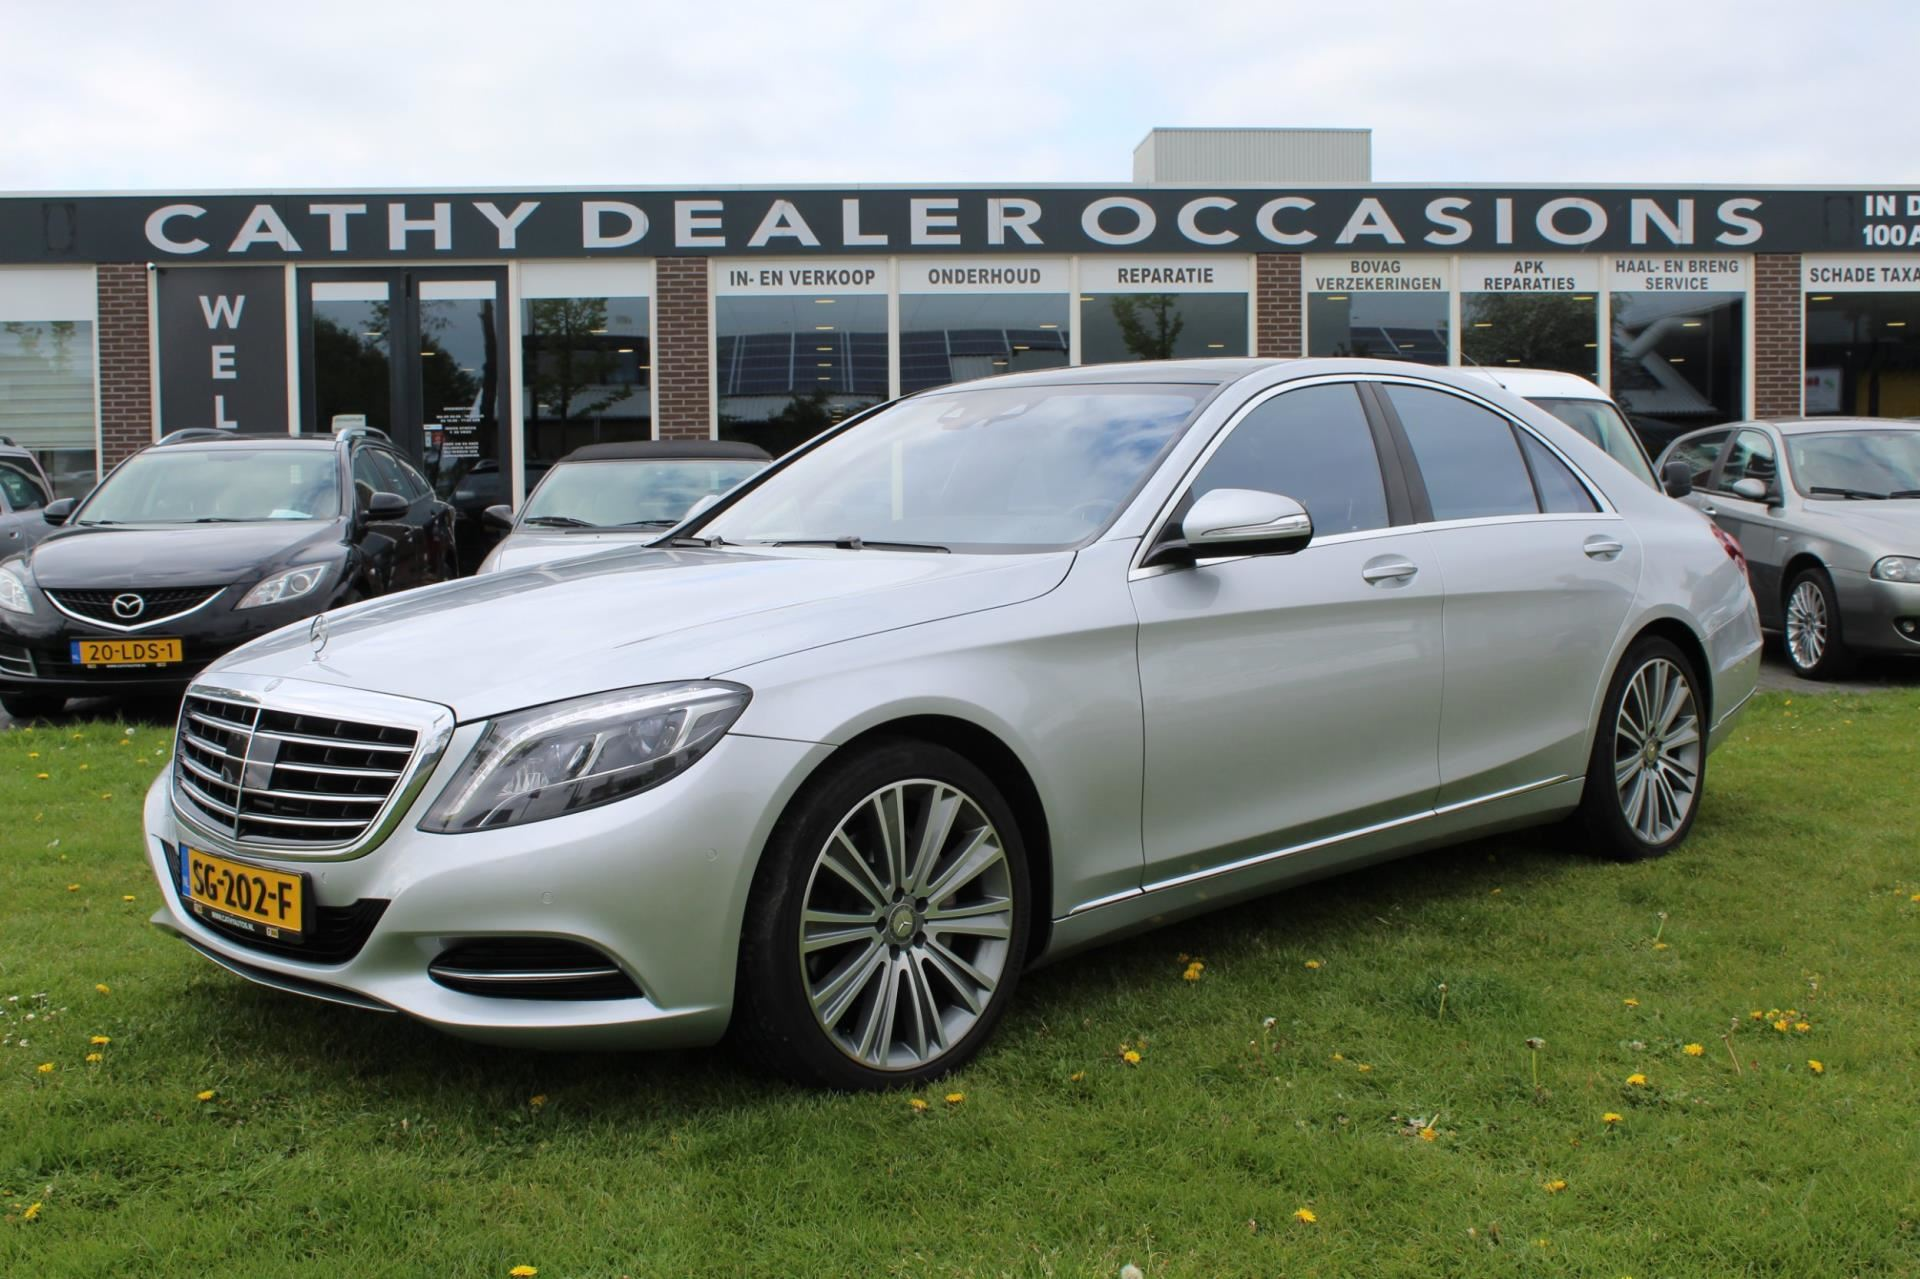 Mercedes-Benz S-klasse occasion - Cathy Dealer Occasions